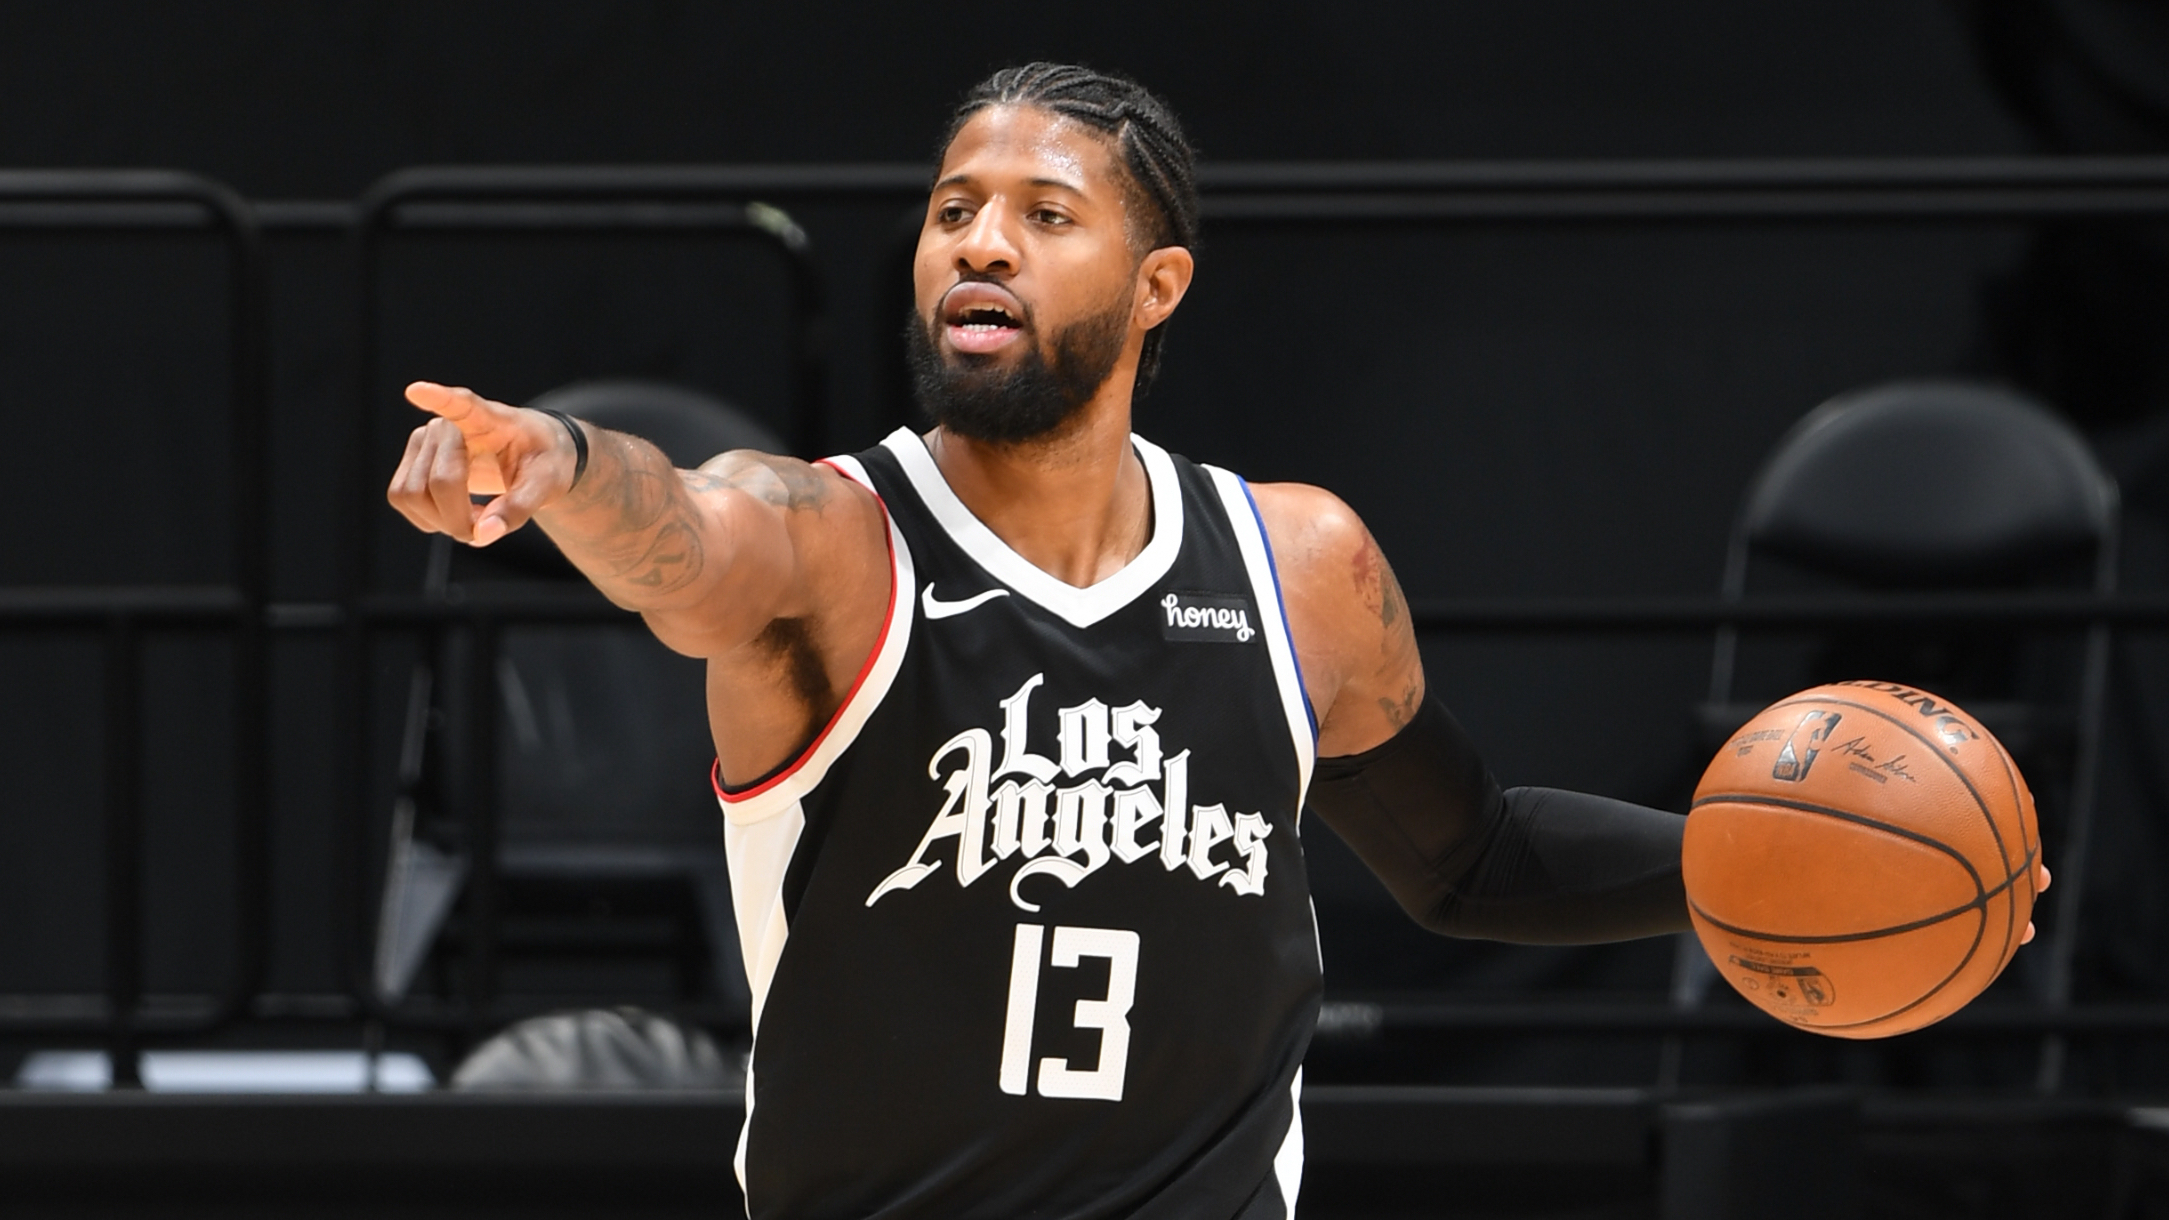 Pelicans vs. Clippers Odds & Picks: Back the League's Best 3-Point Shooters article feature image